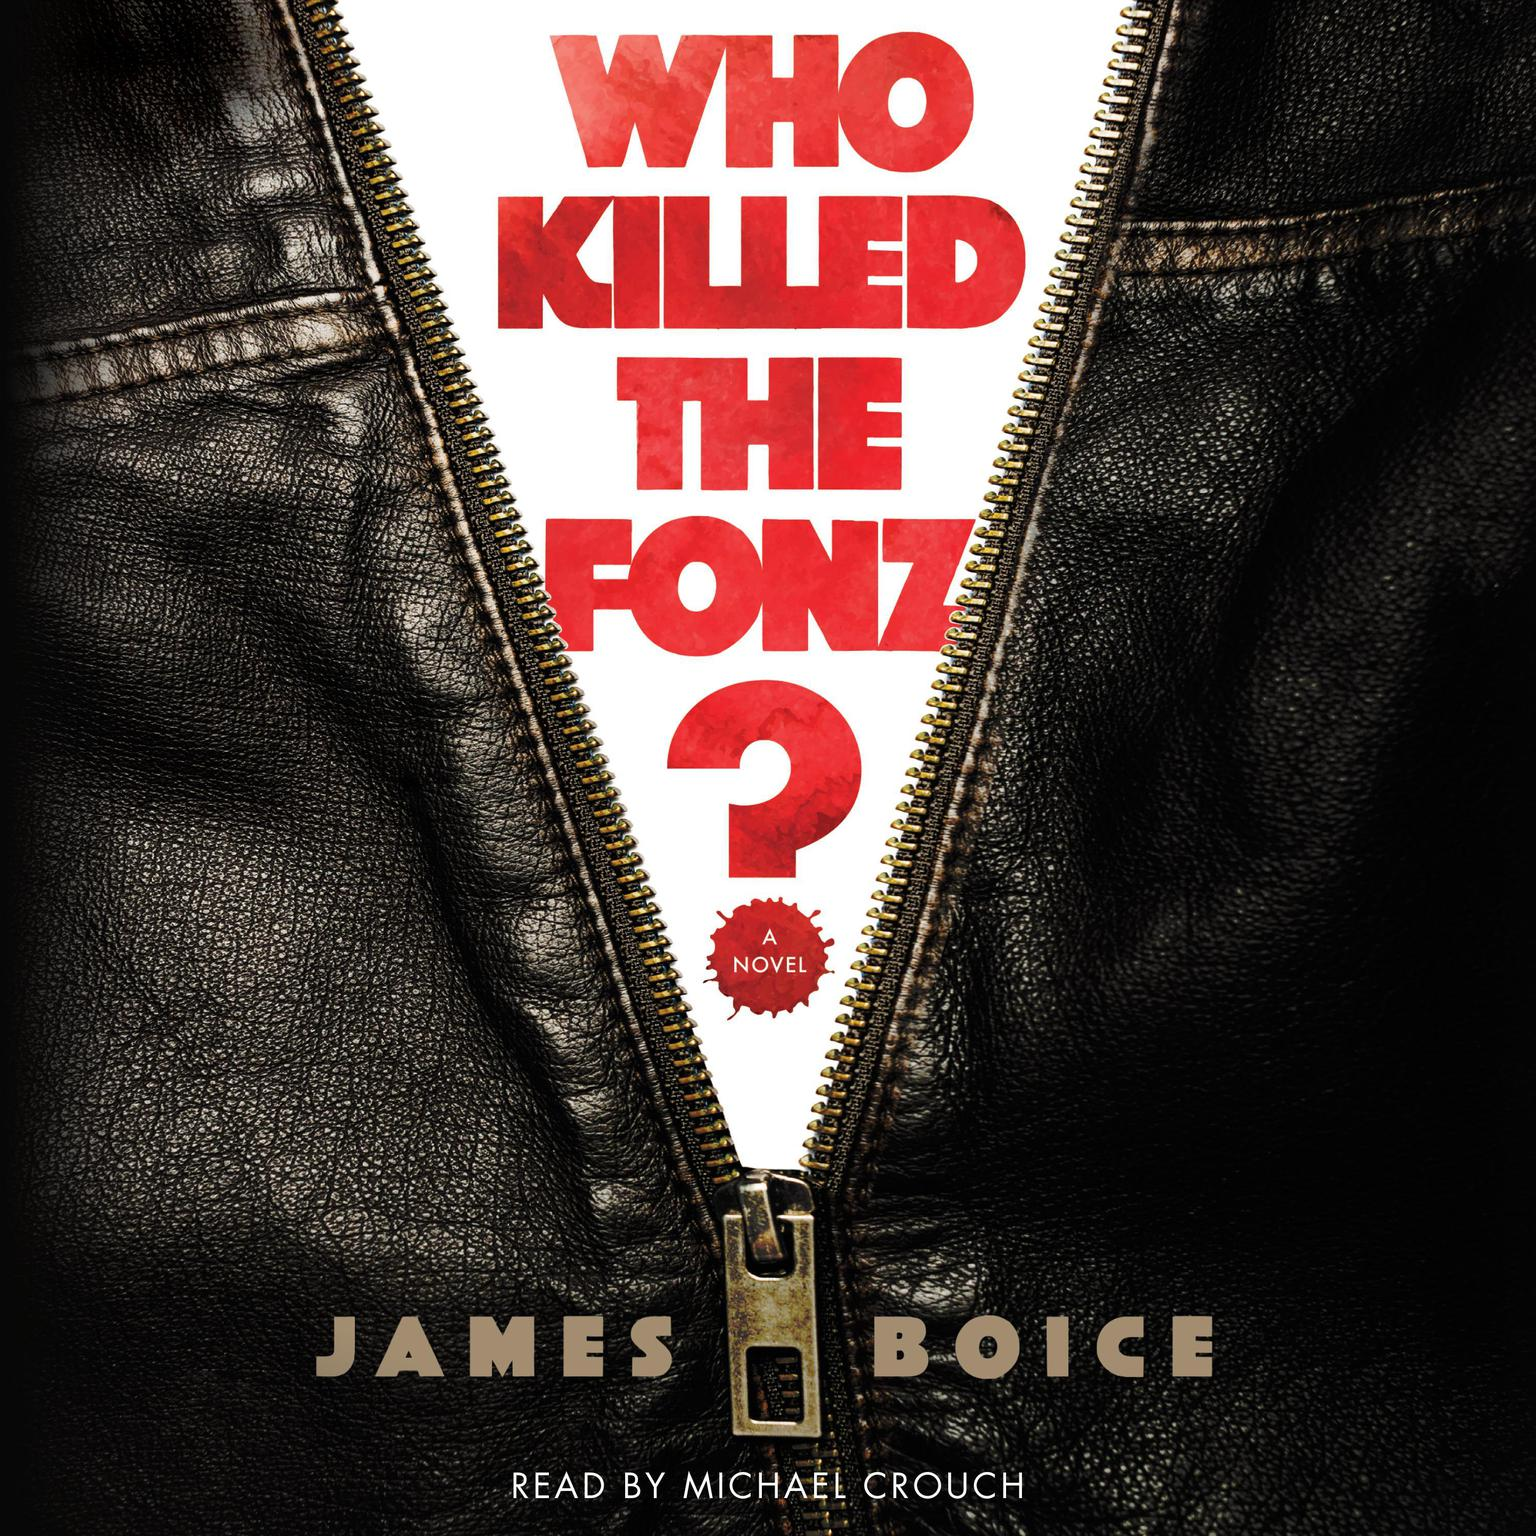 Printable Who Killed the Fonz? Audiobook Cover Art